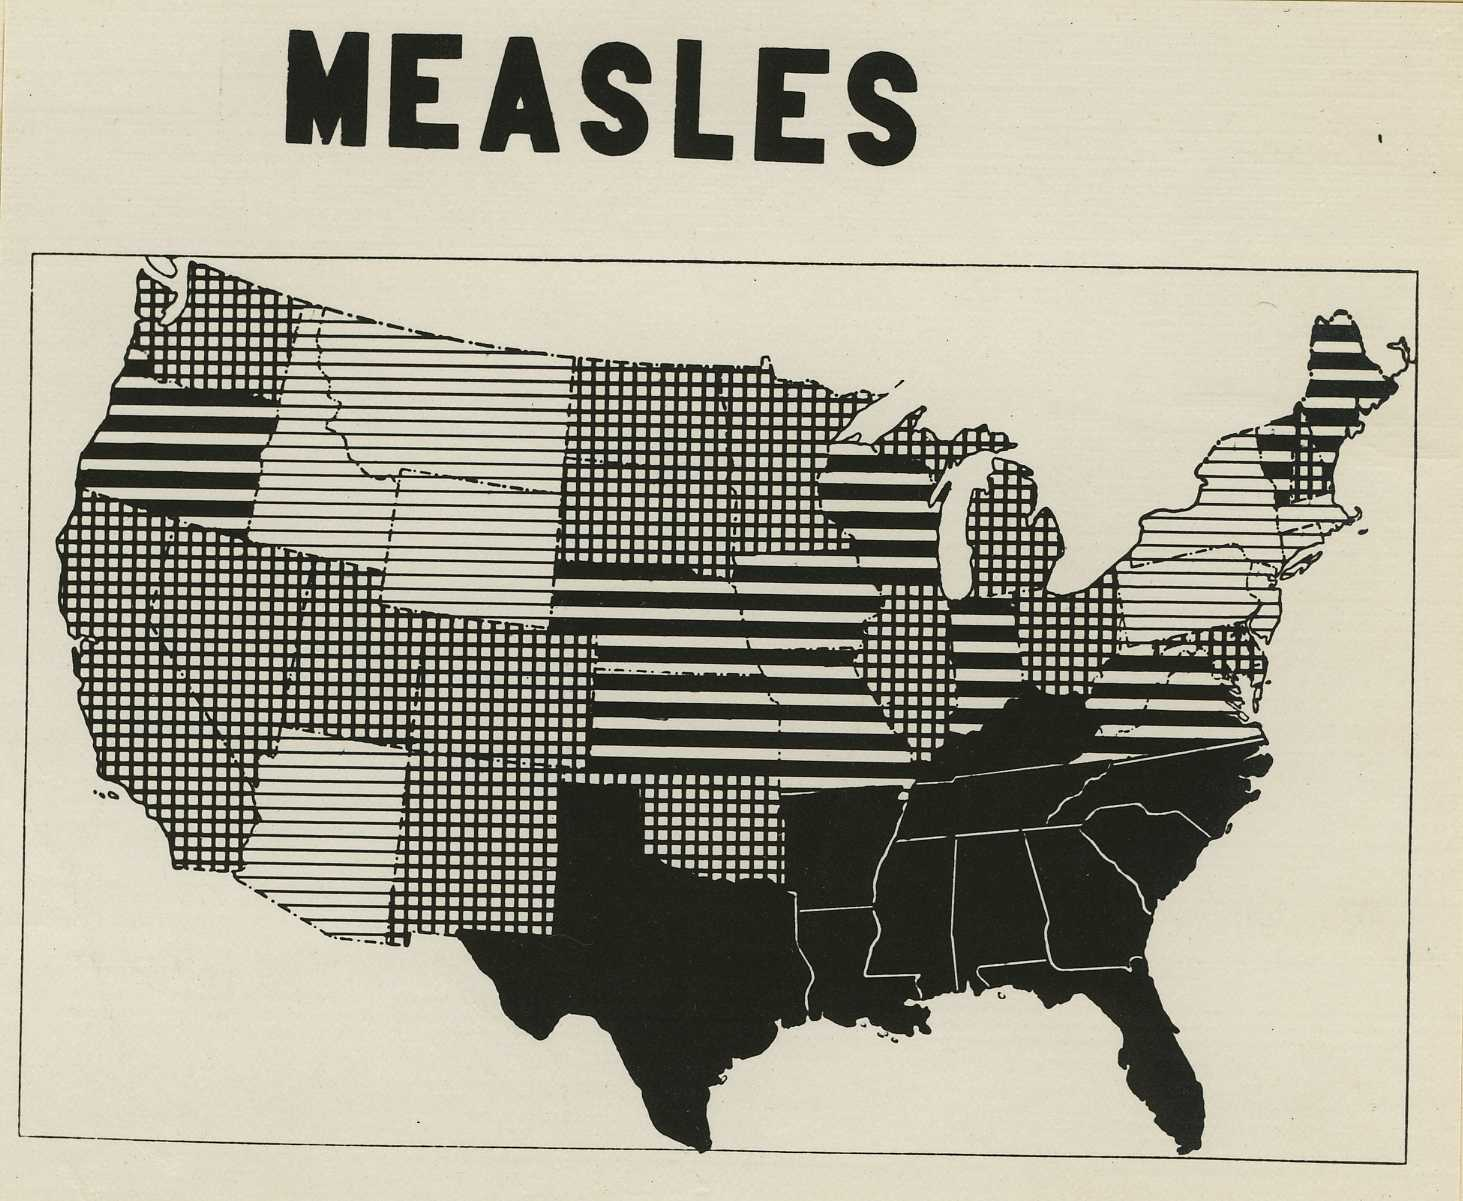 Measles cases aren't spiking, despite talk of an outbreak